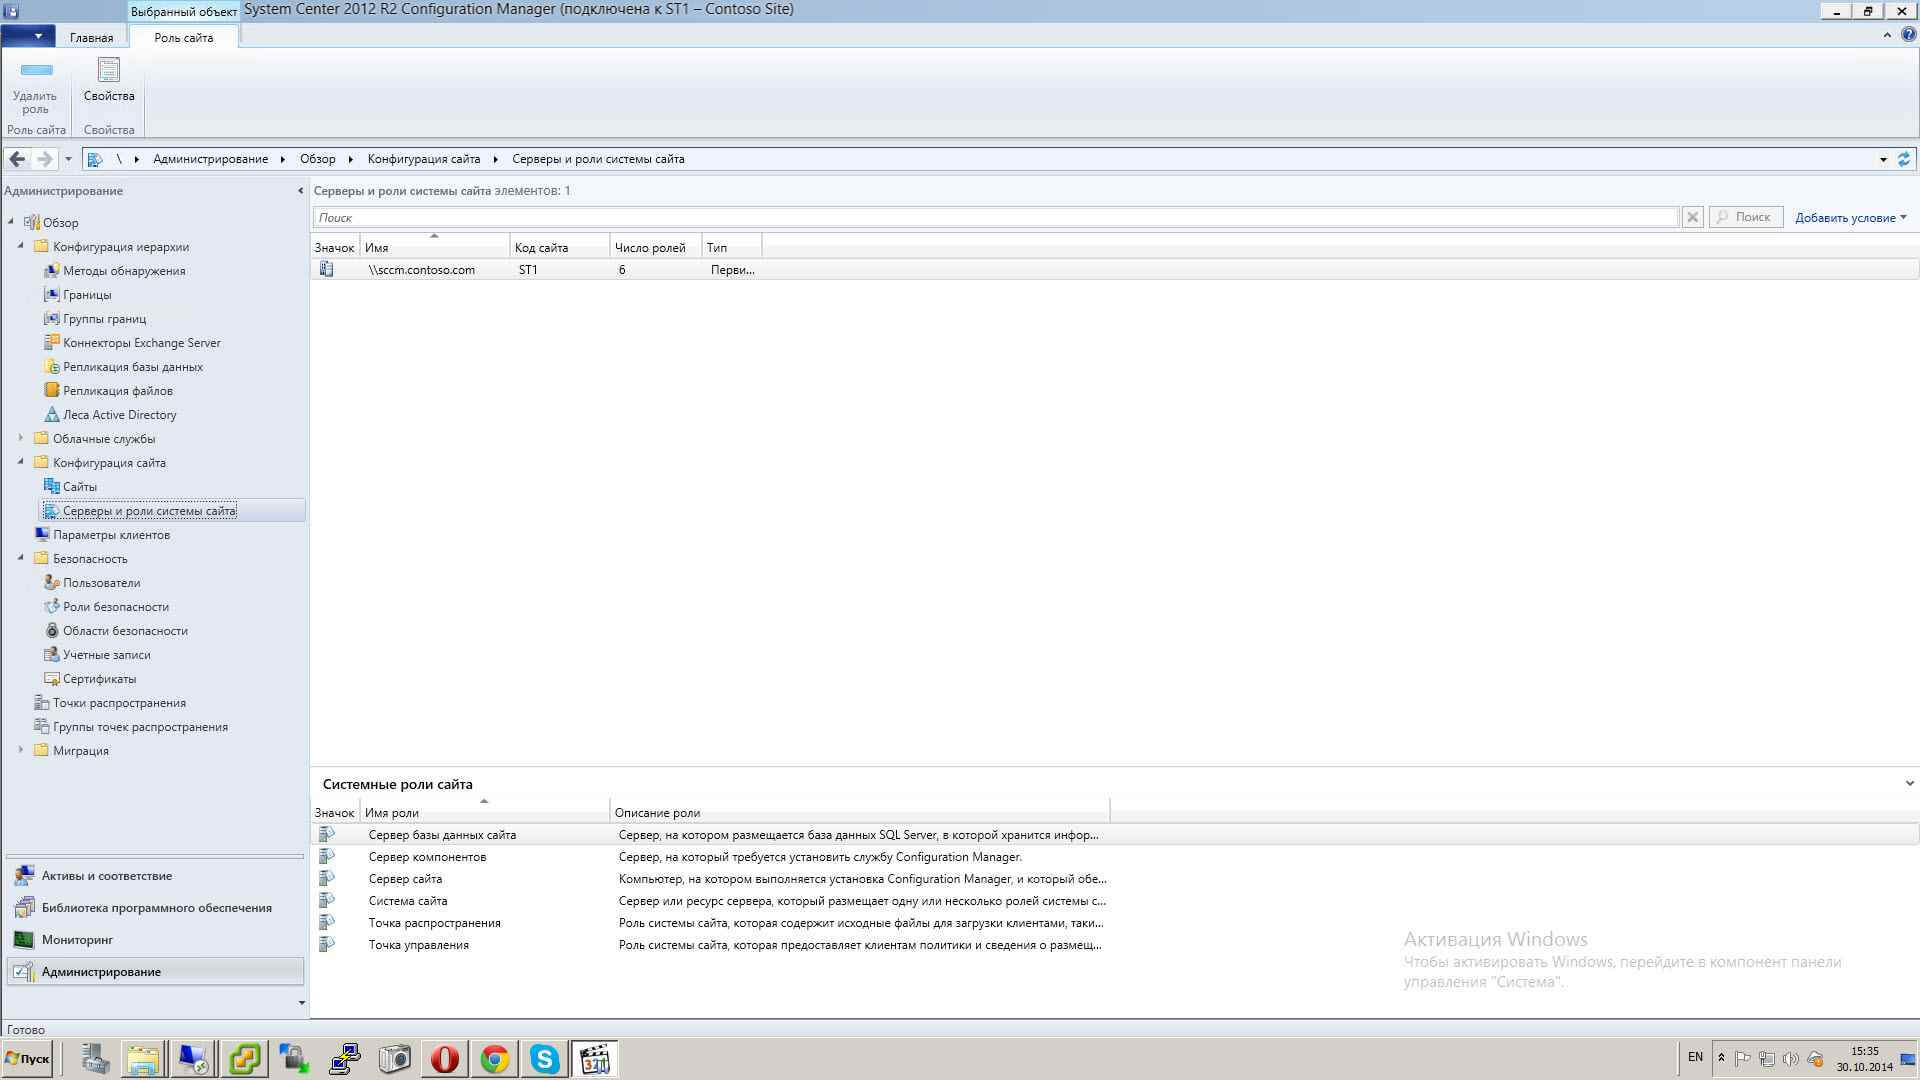 Как установить SCCM (System Center Configuration Manager) 2012R2 в windows server 2012R2 -3 часть. Базовая настройка site server-43